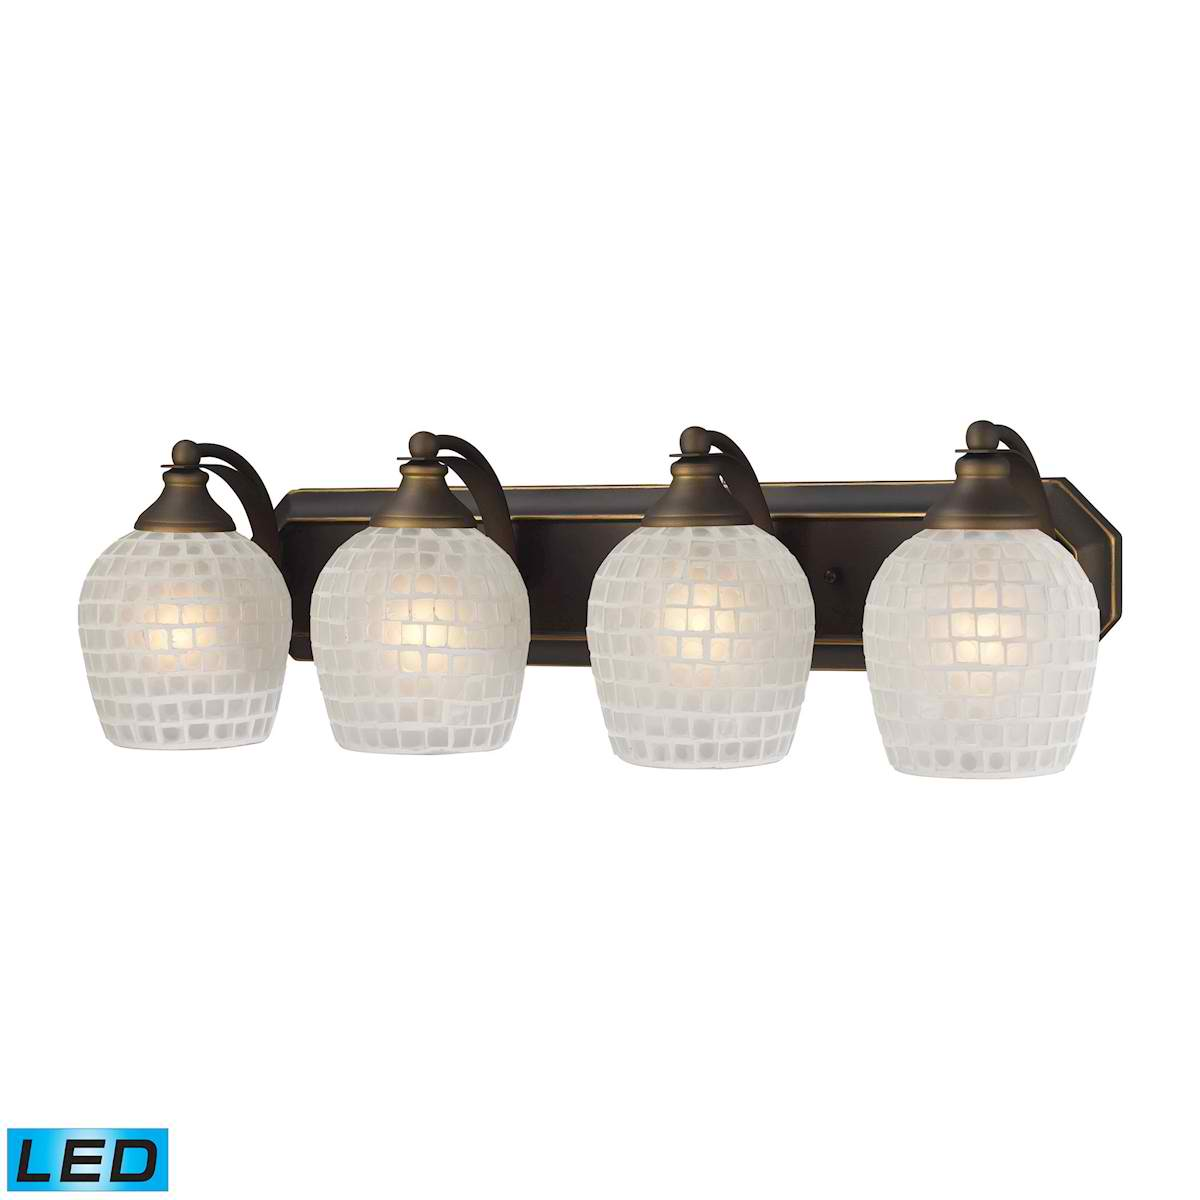 4 Light Vanity in Aged Bronze and White Mosaic Glass - LED, 800 Lumens (3200 Lumens Total) with Full Scale